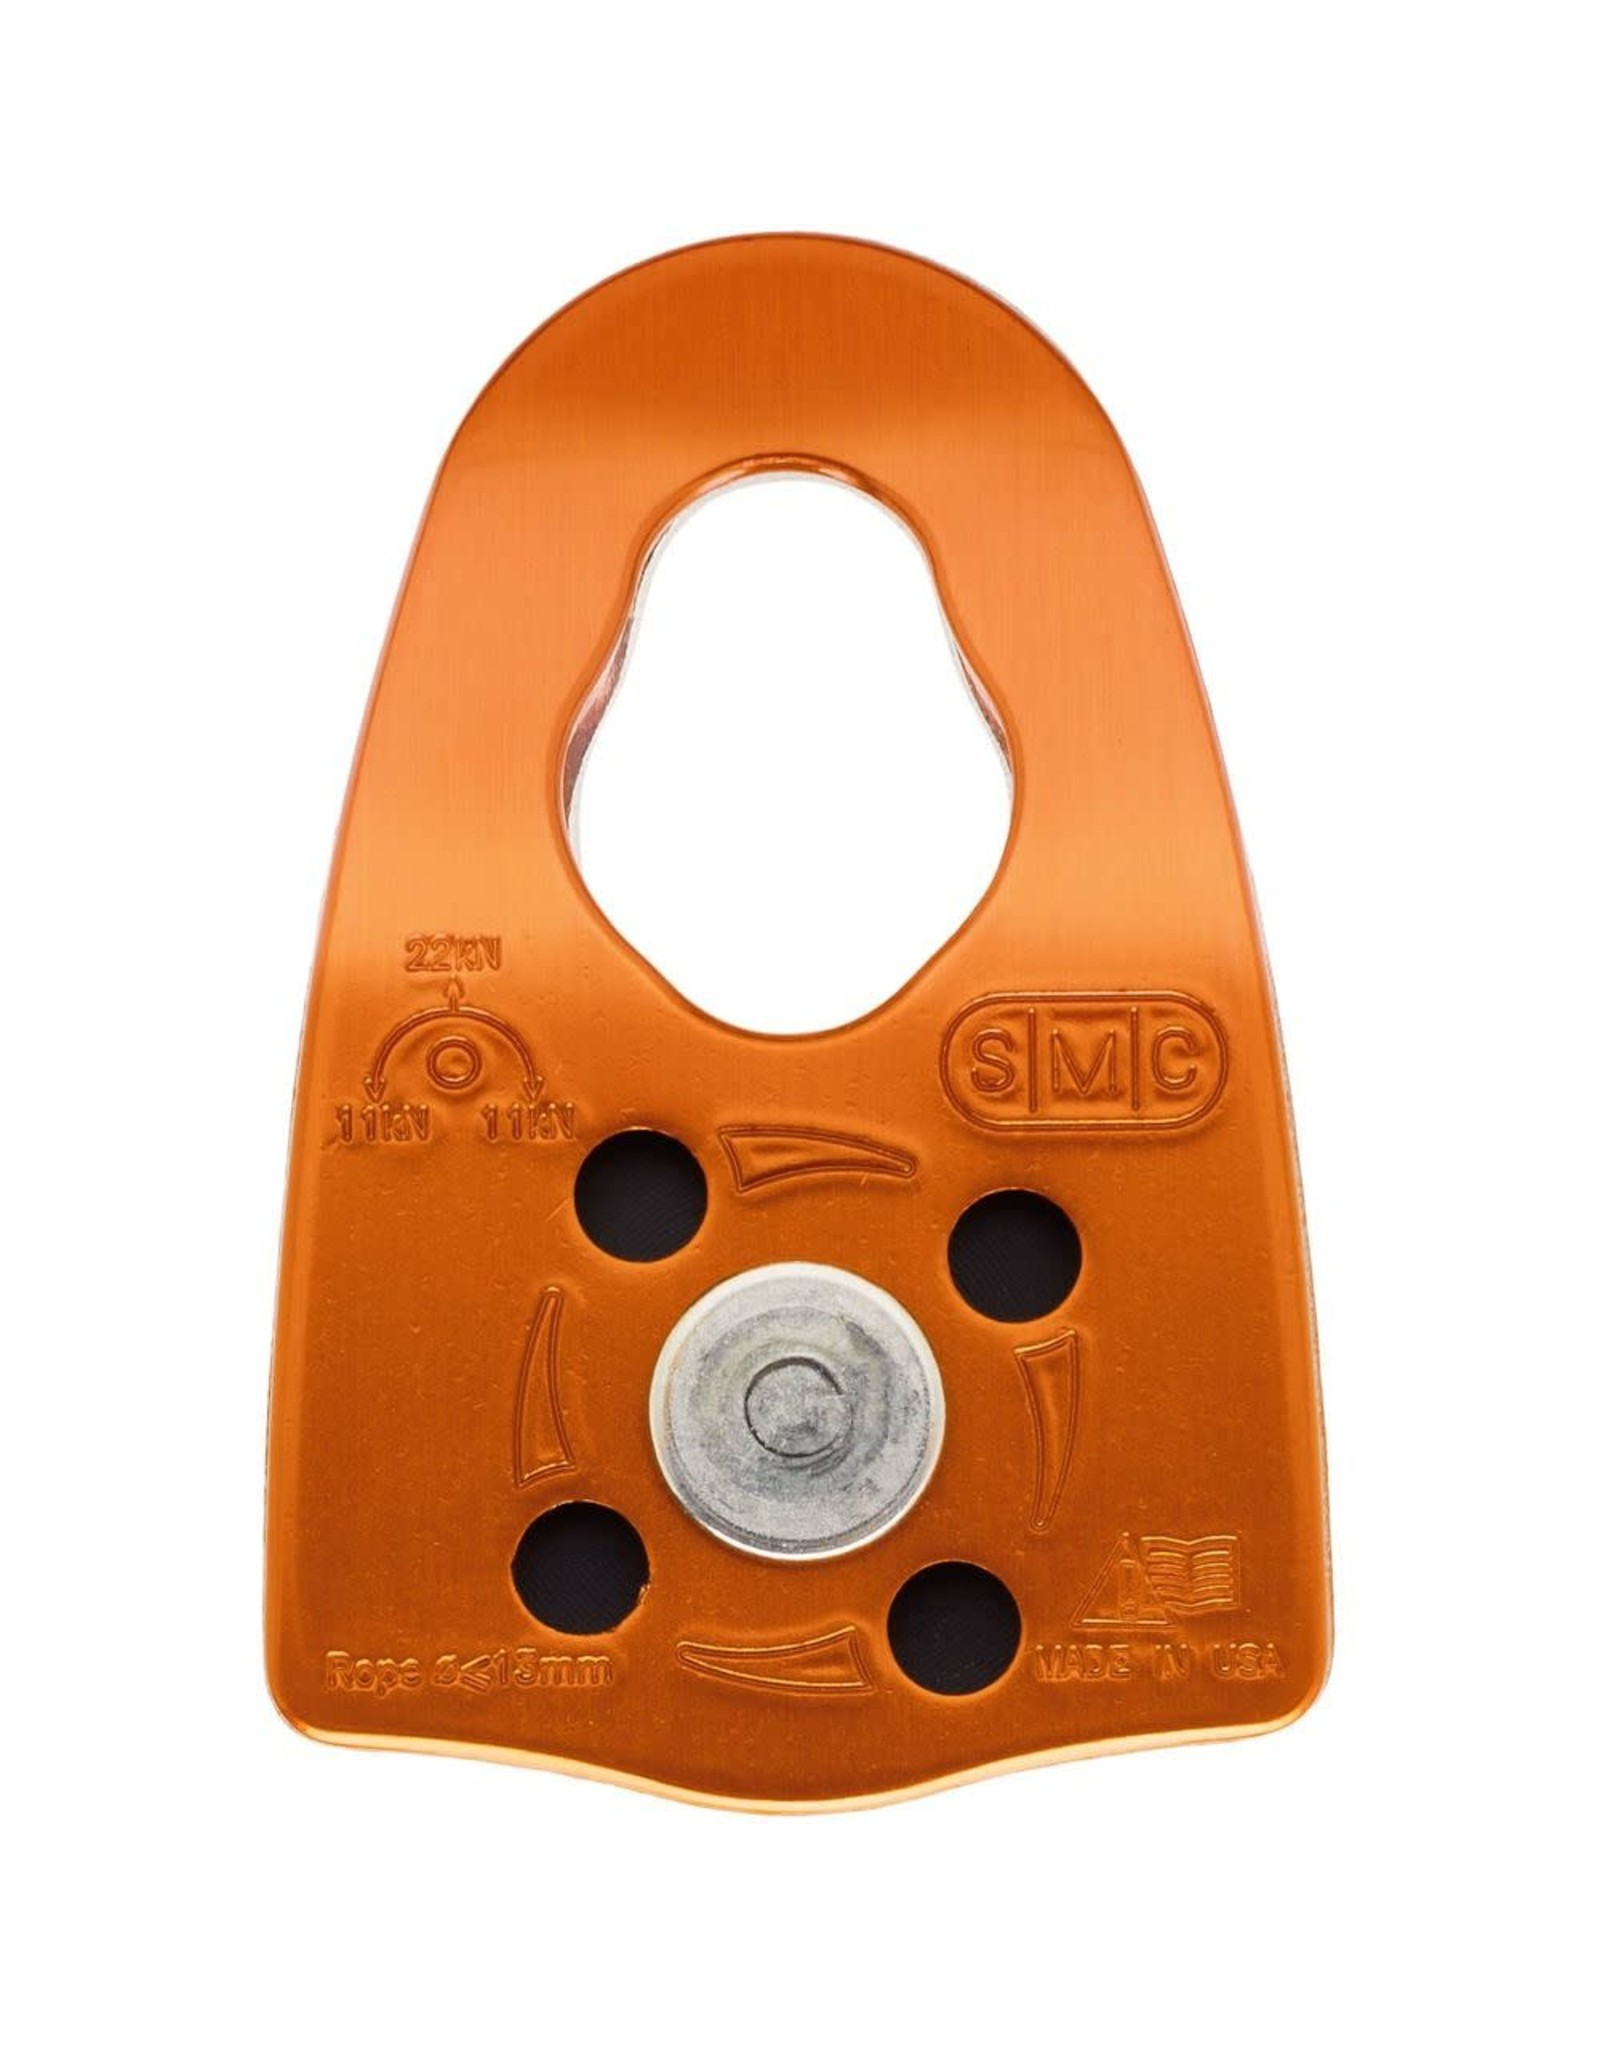 SMC SMC Mini CRx Prusik Pulley